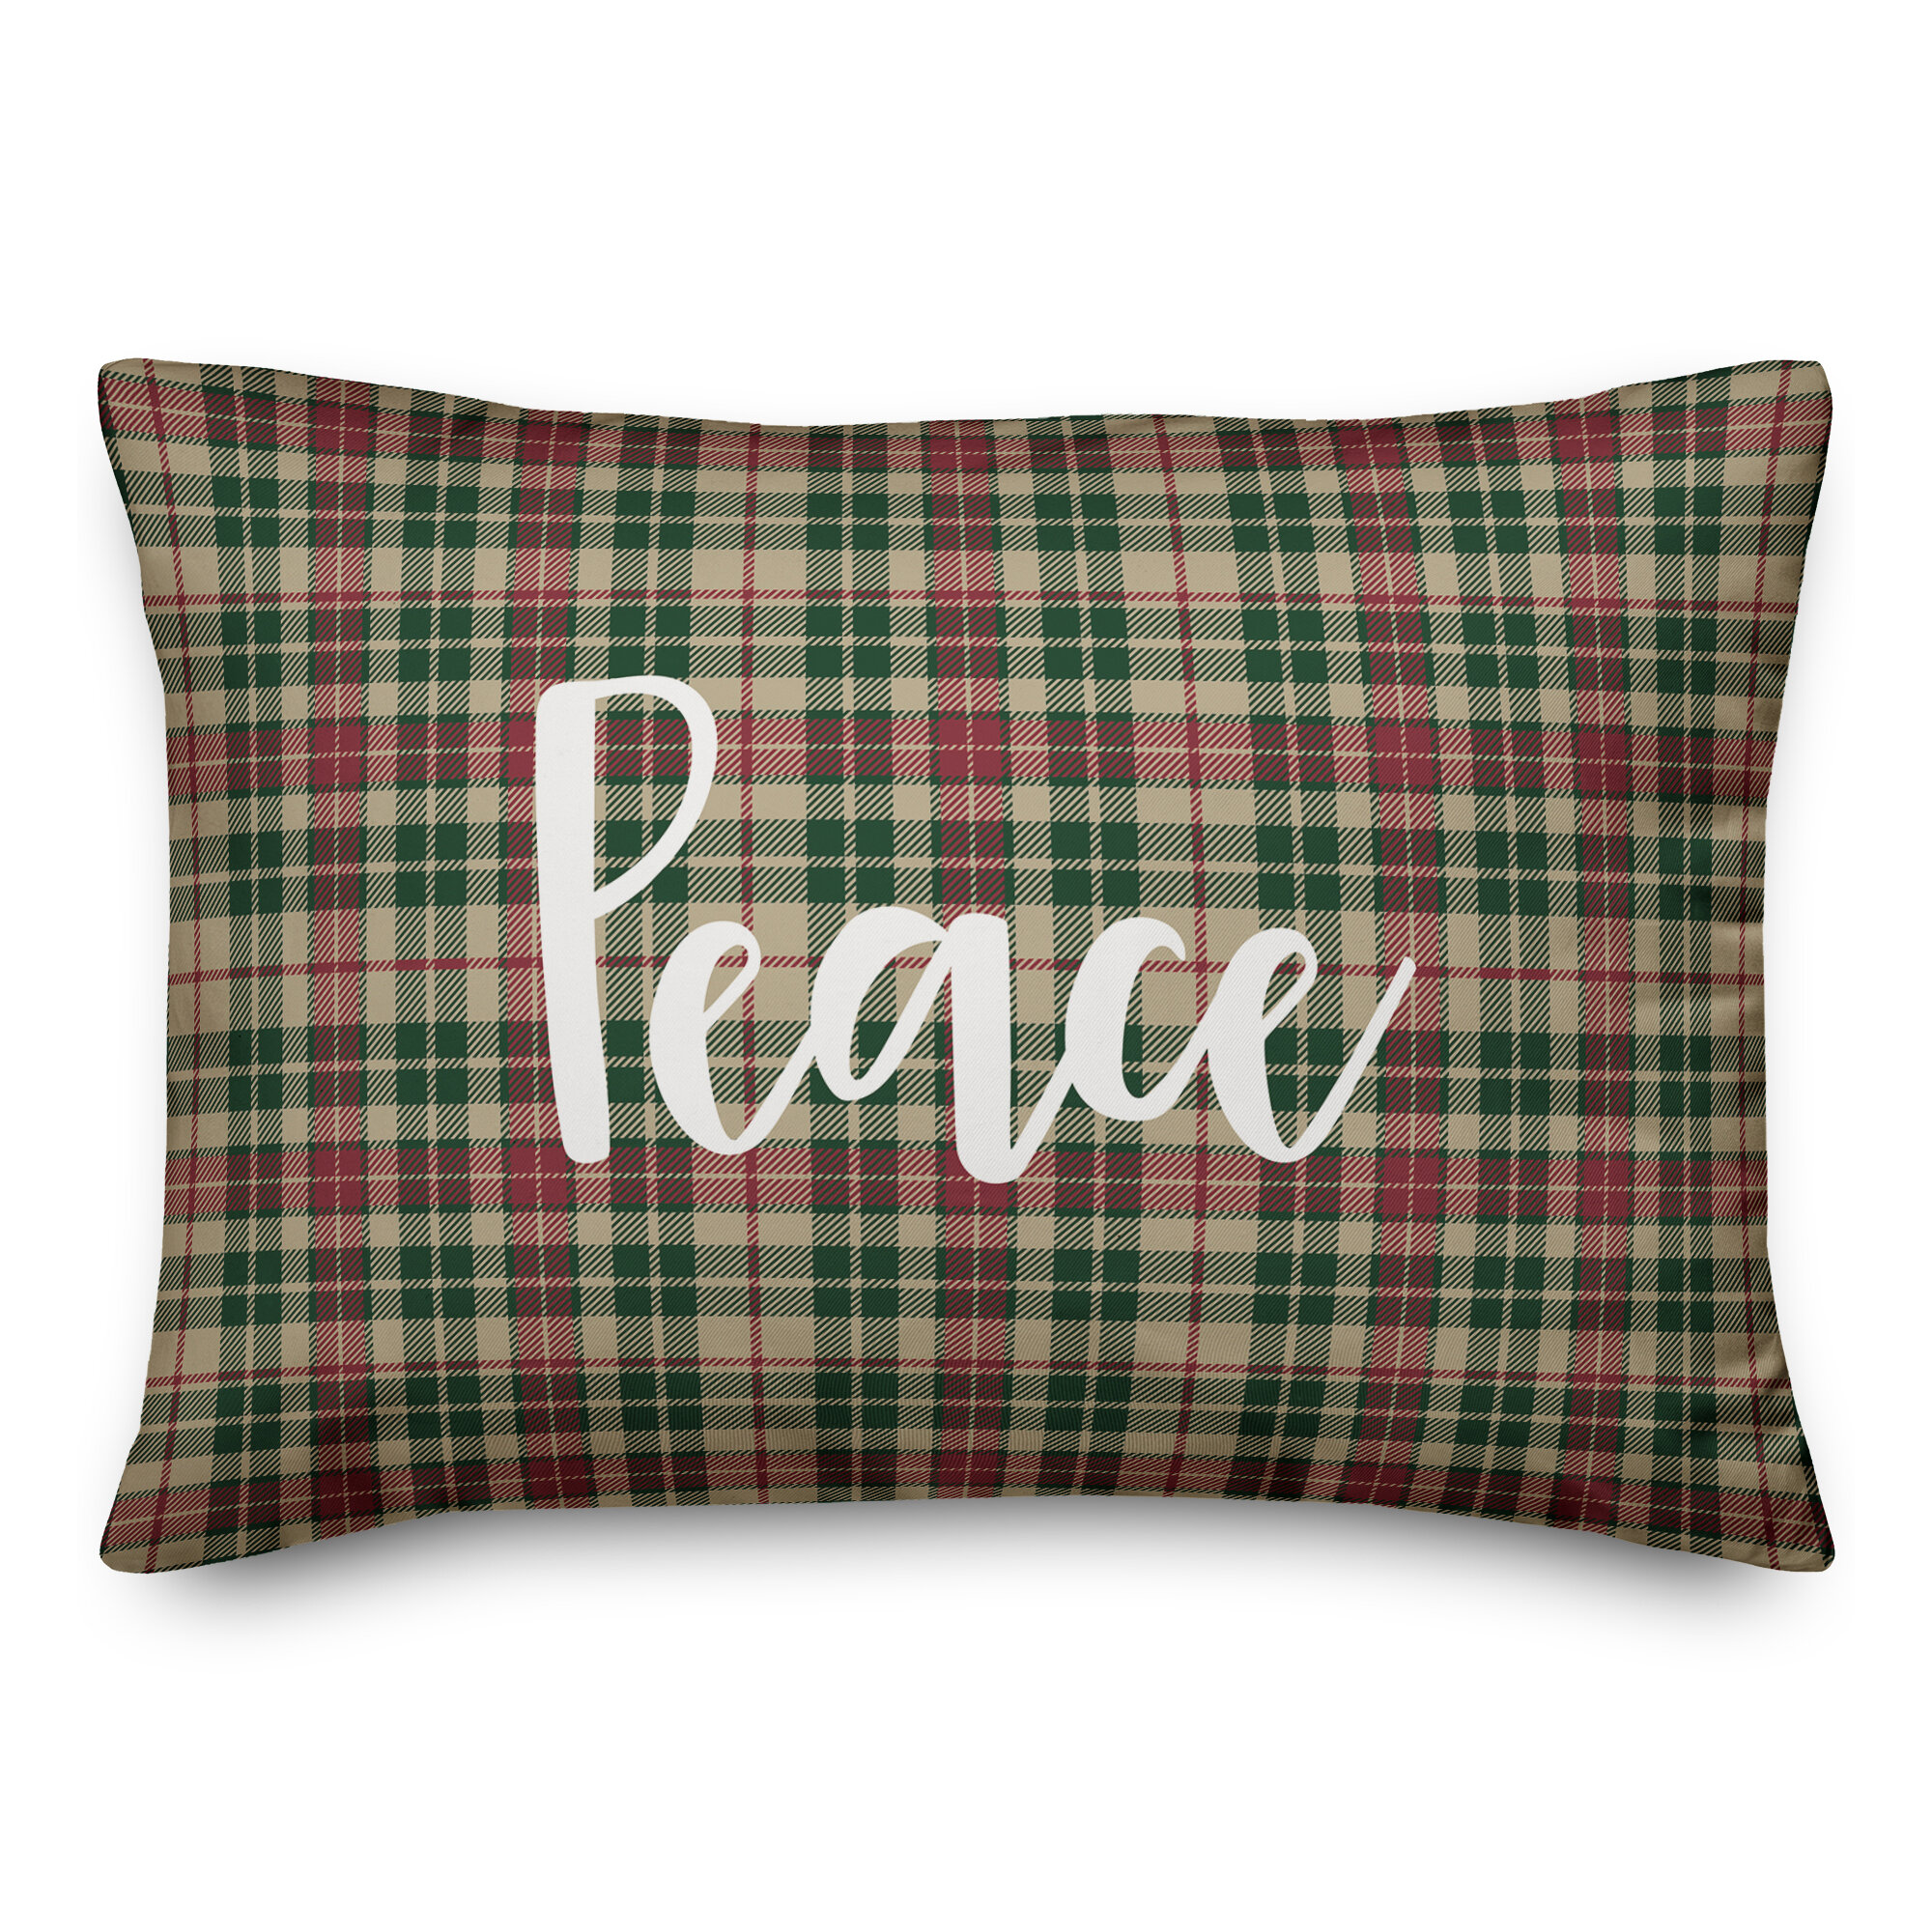 The Holiday Aisle Gourdine Peace In Tartan Plaid Lumbar Pillow Wayfair